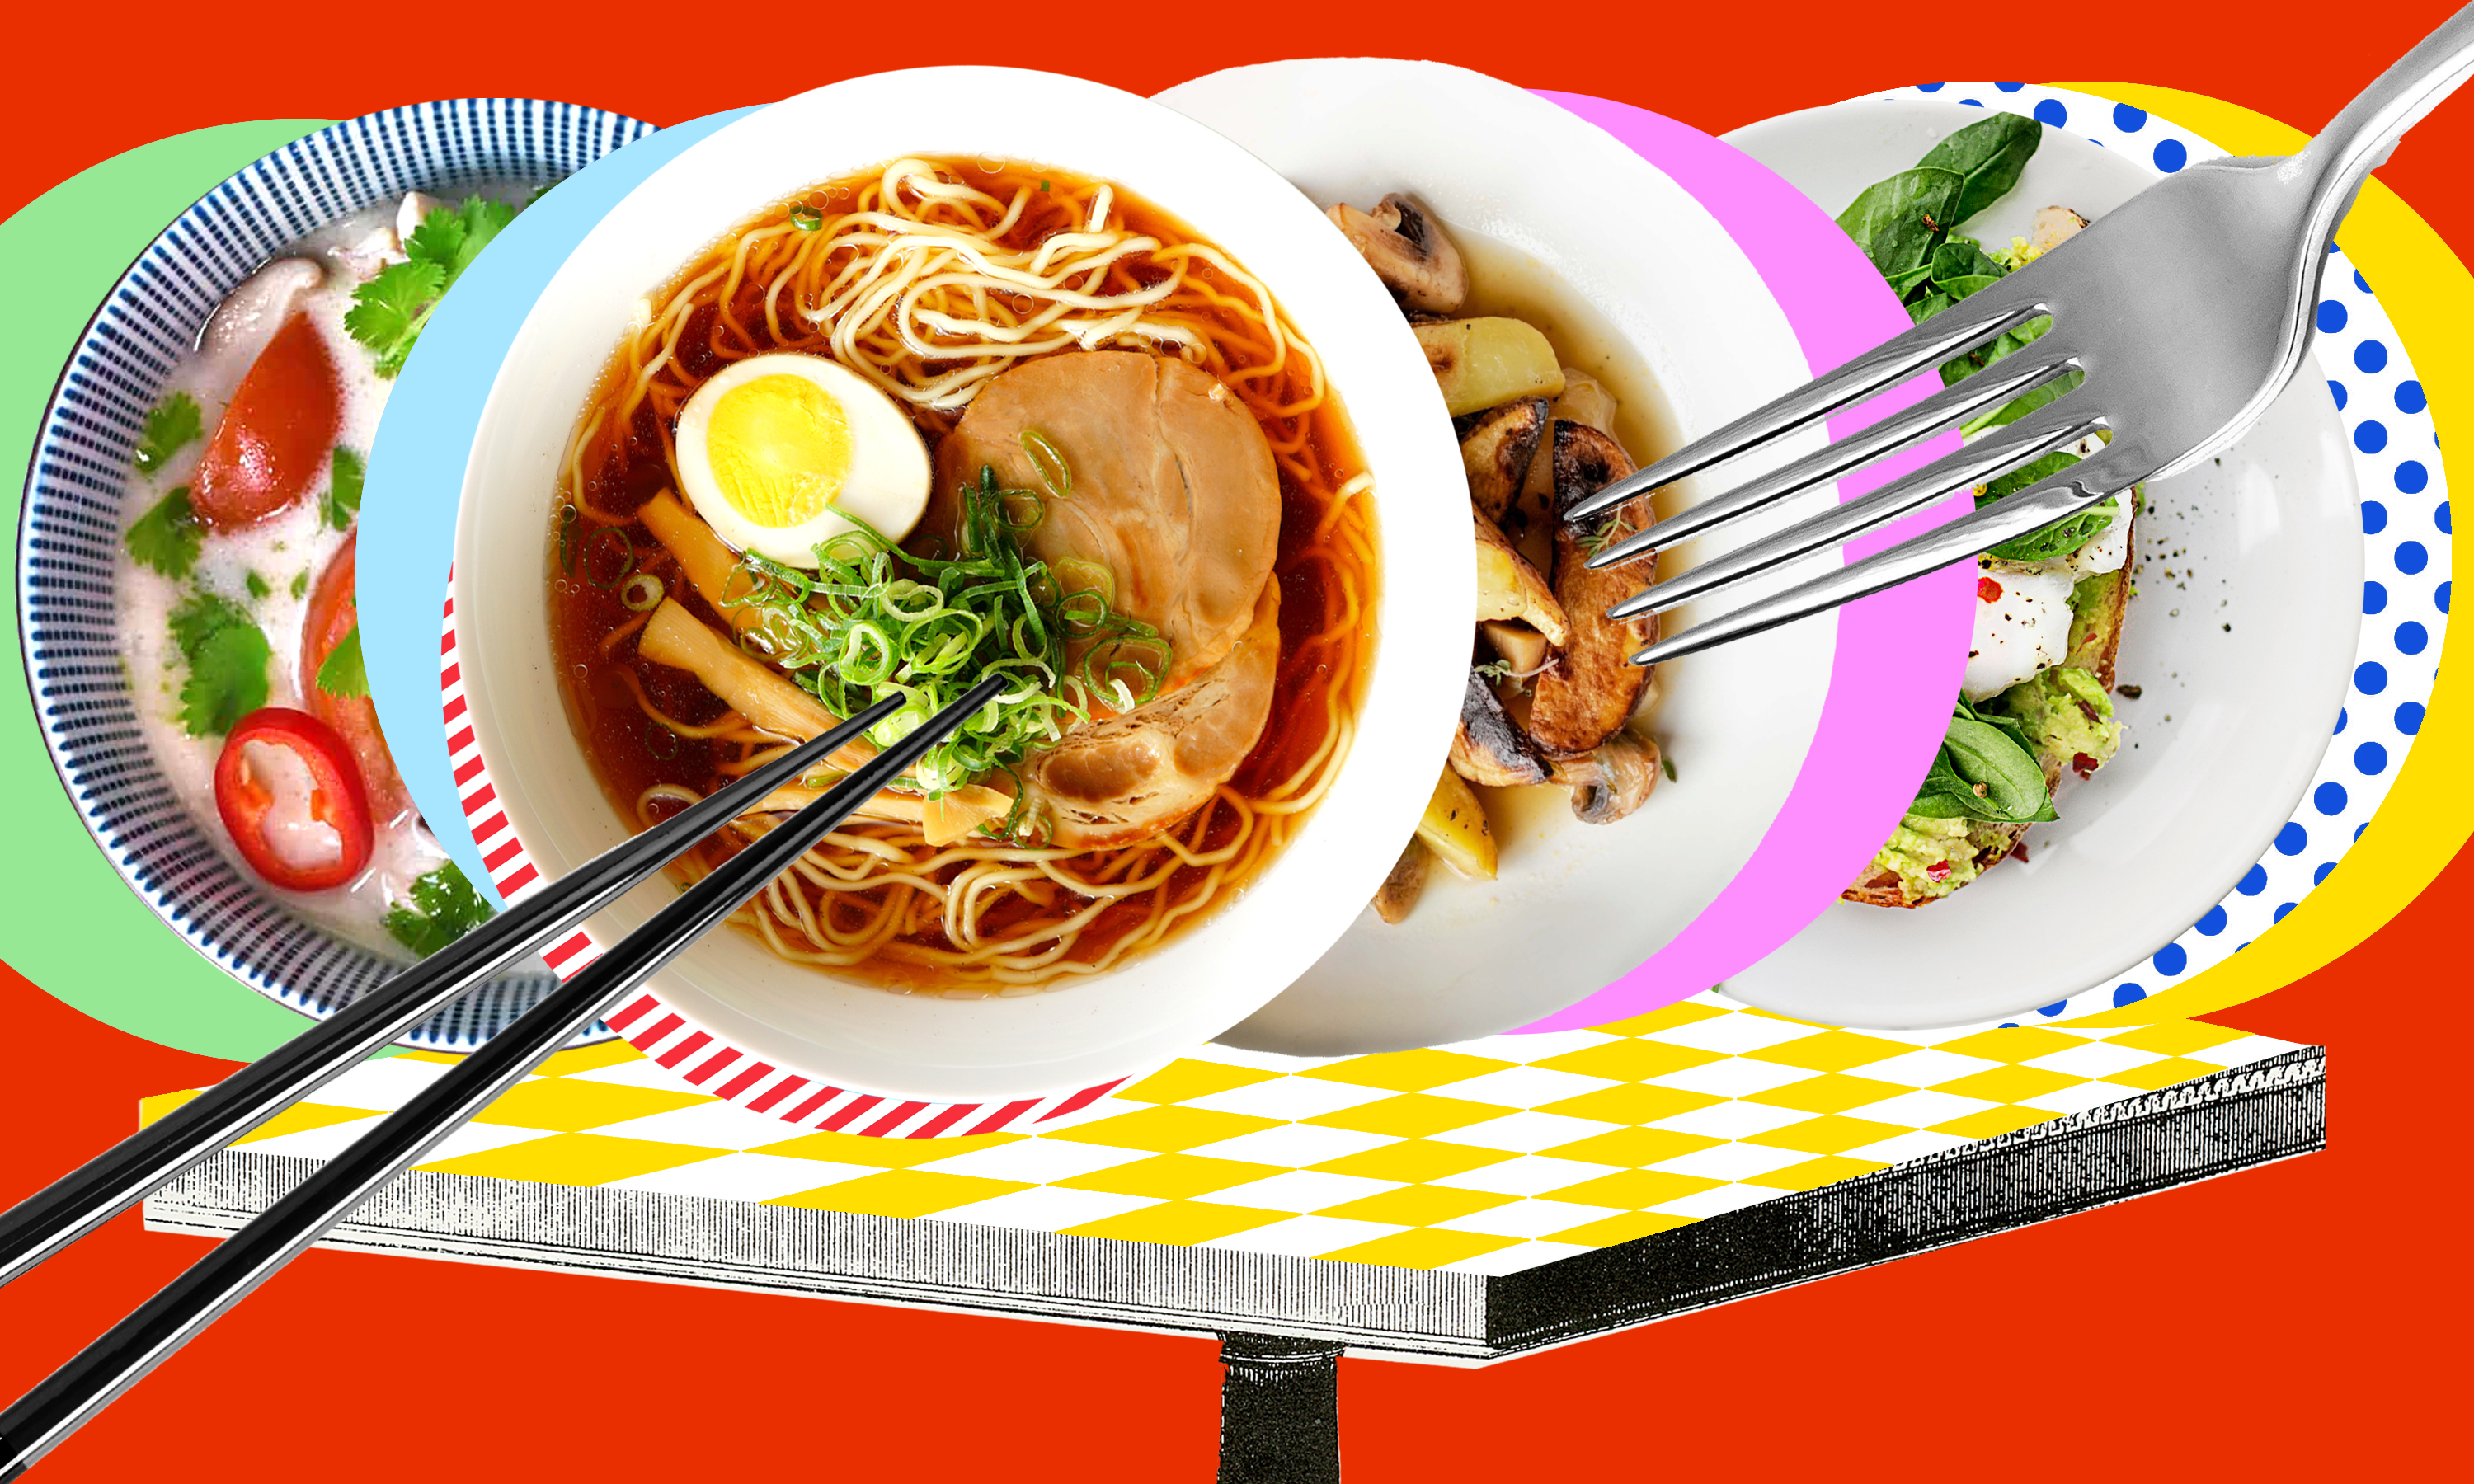 Four dishes, with soup, ramen, and pastas, on top of a checked table.